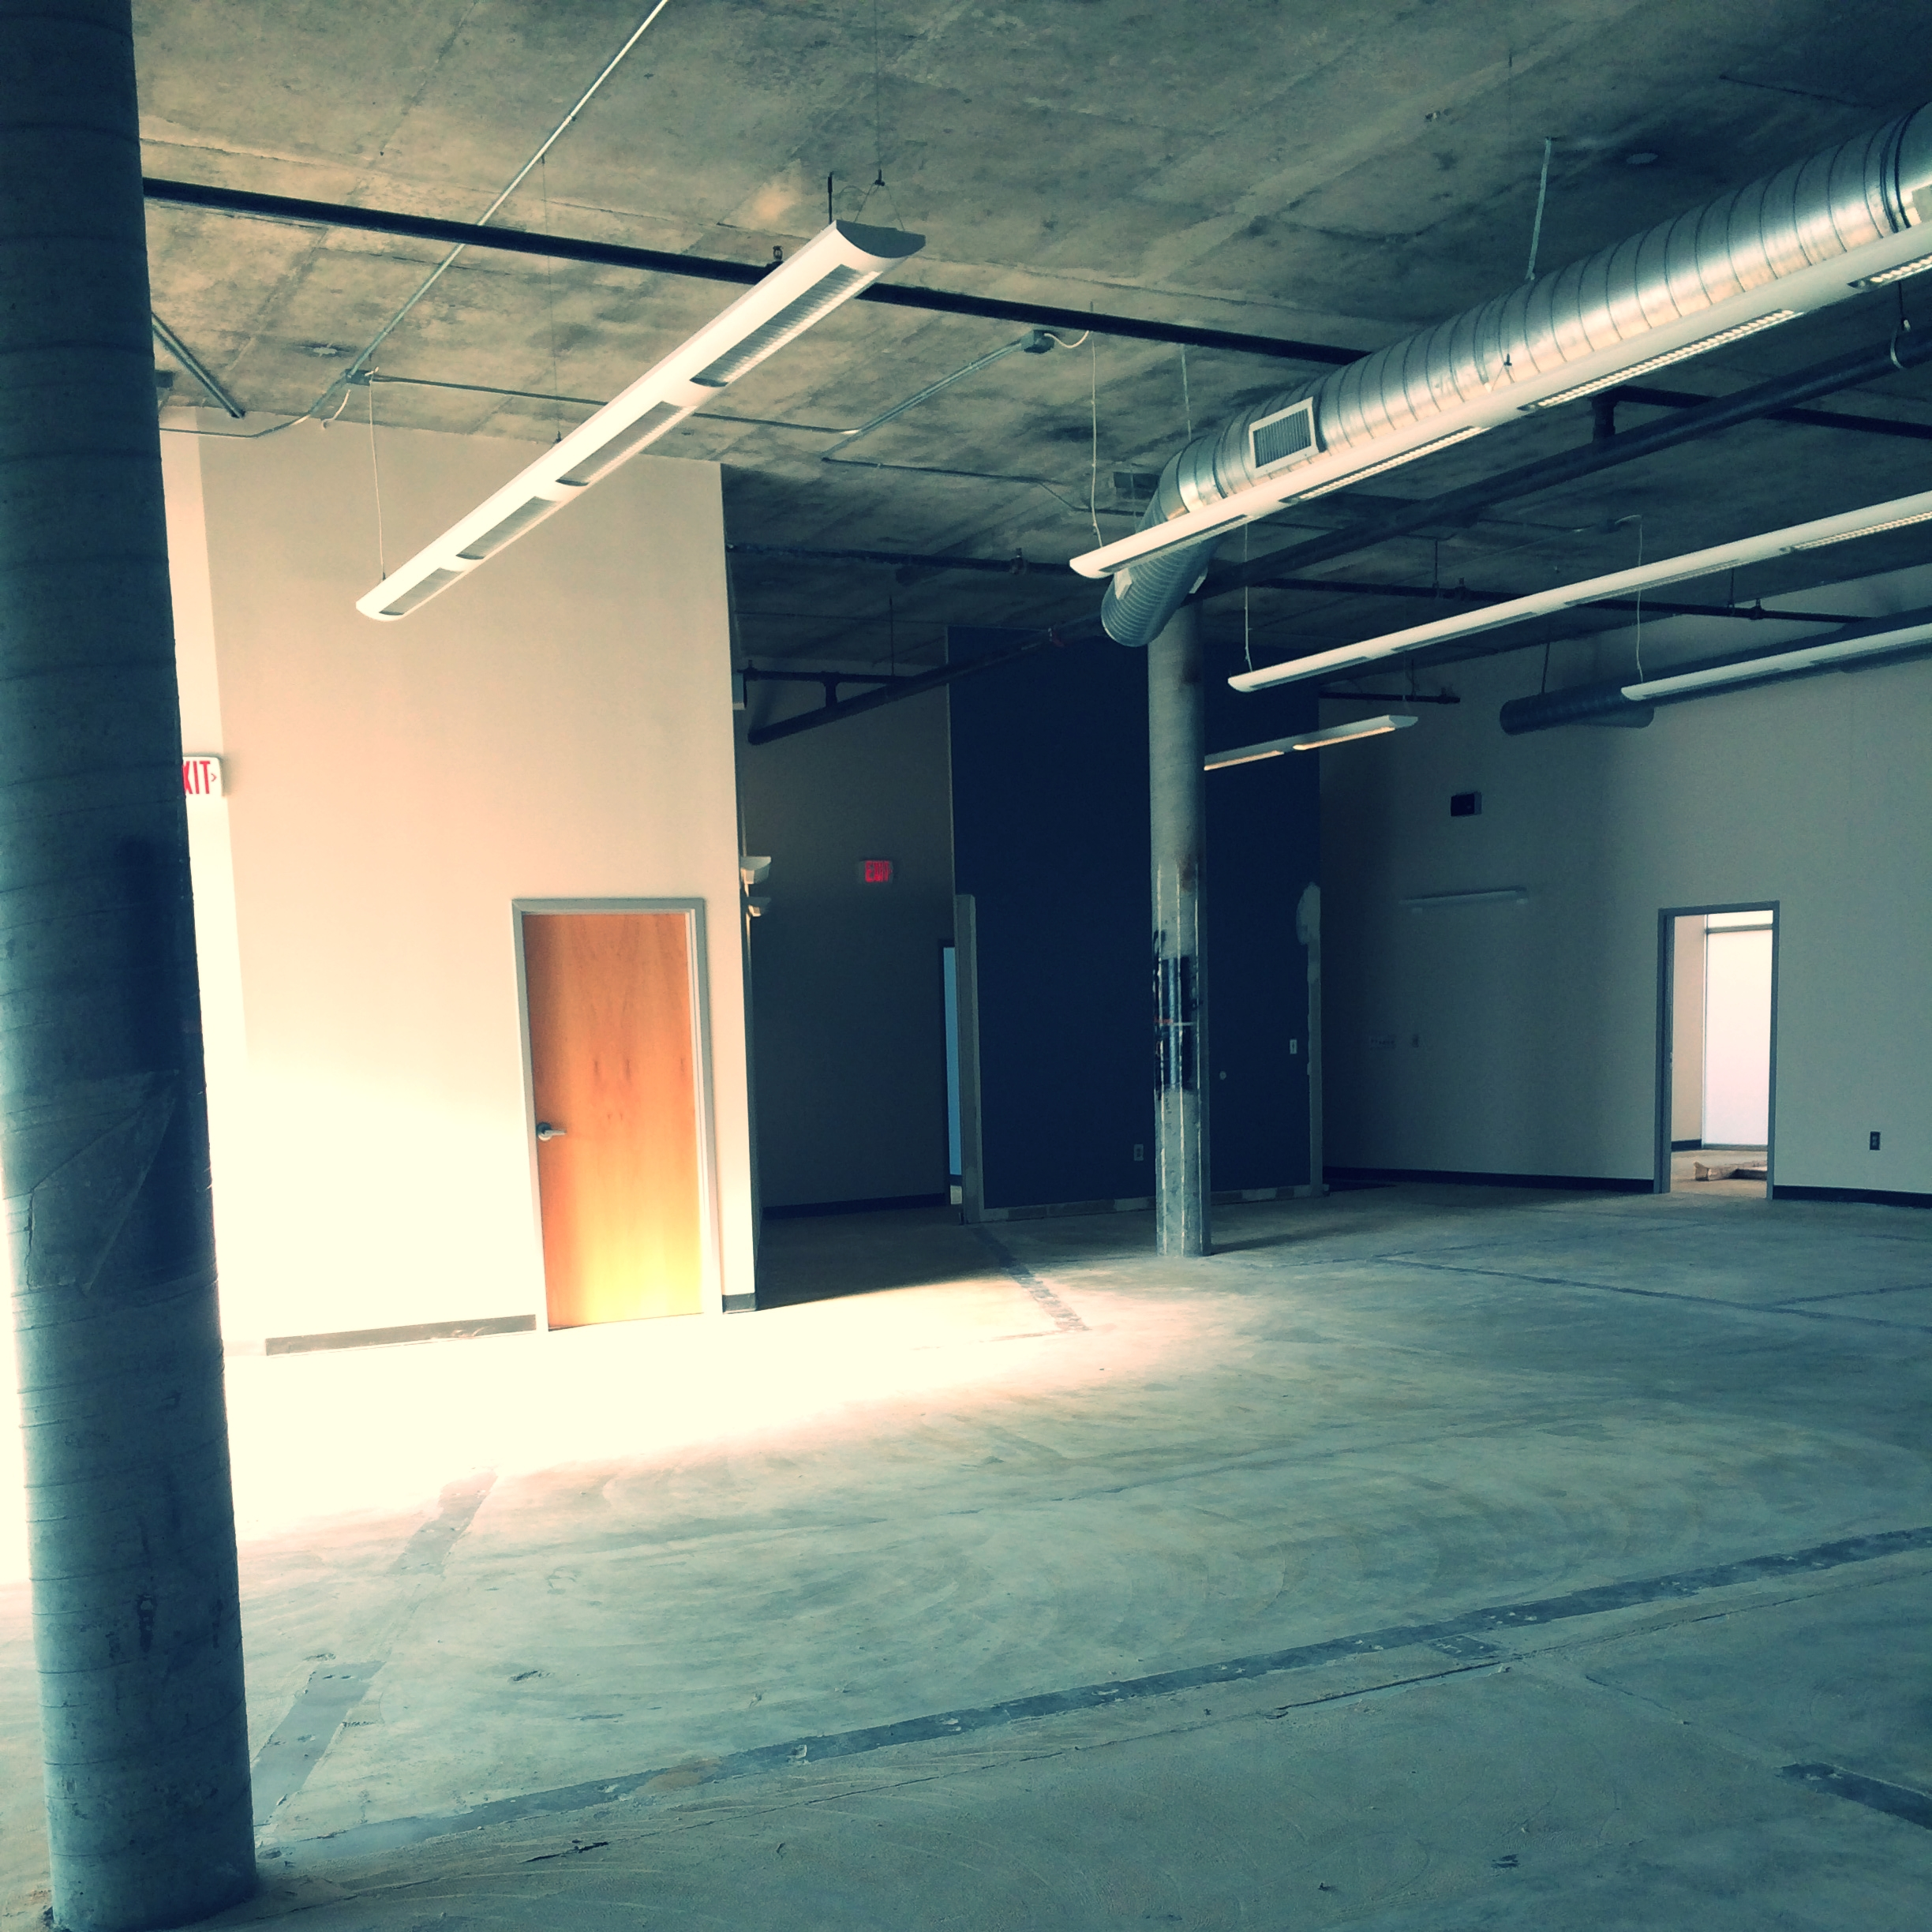 I got a sneak peek into a blank canvas of a building this week. Very excited for things to come!